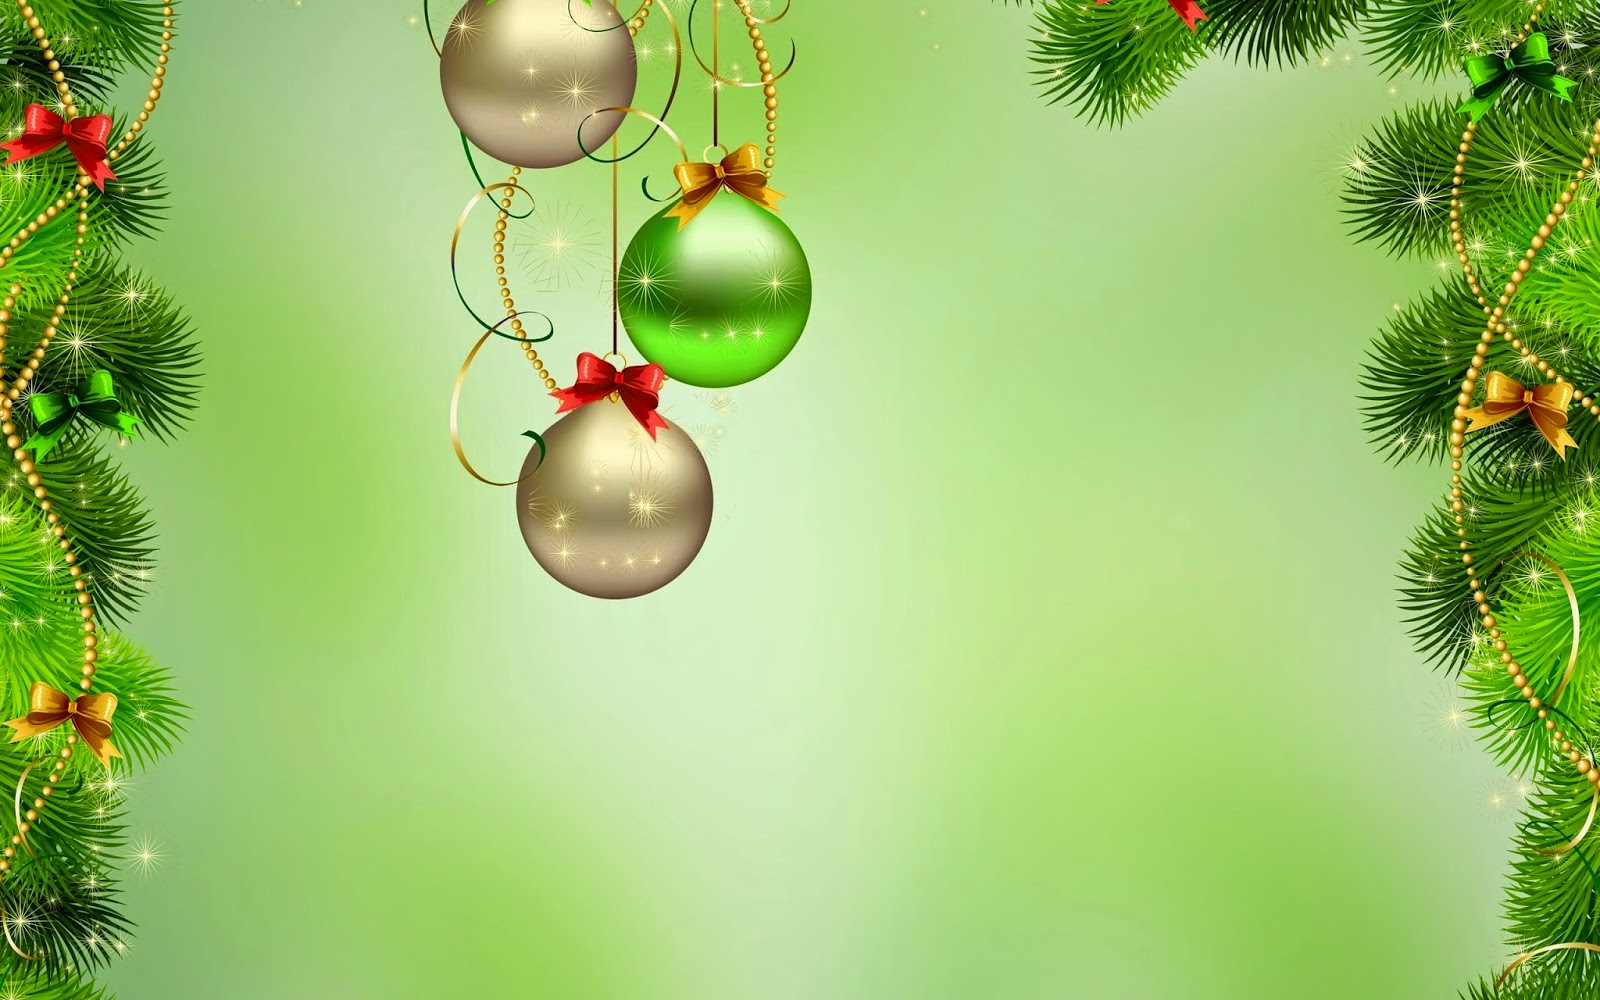 Green-theme-Background-image-Christmas-template-card-for-writing-wishes-greetings-friends-family-HD-wallpaper.jpg